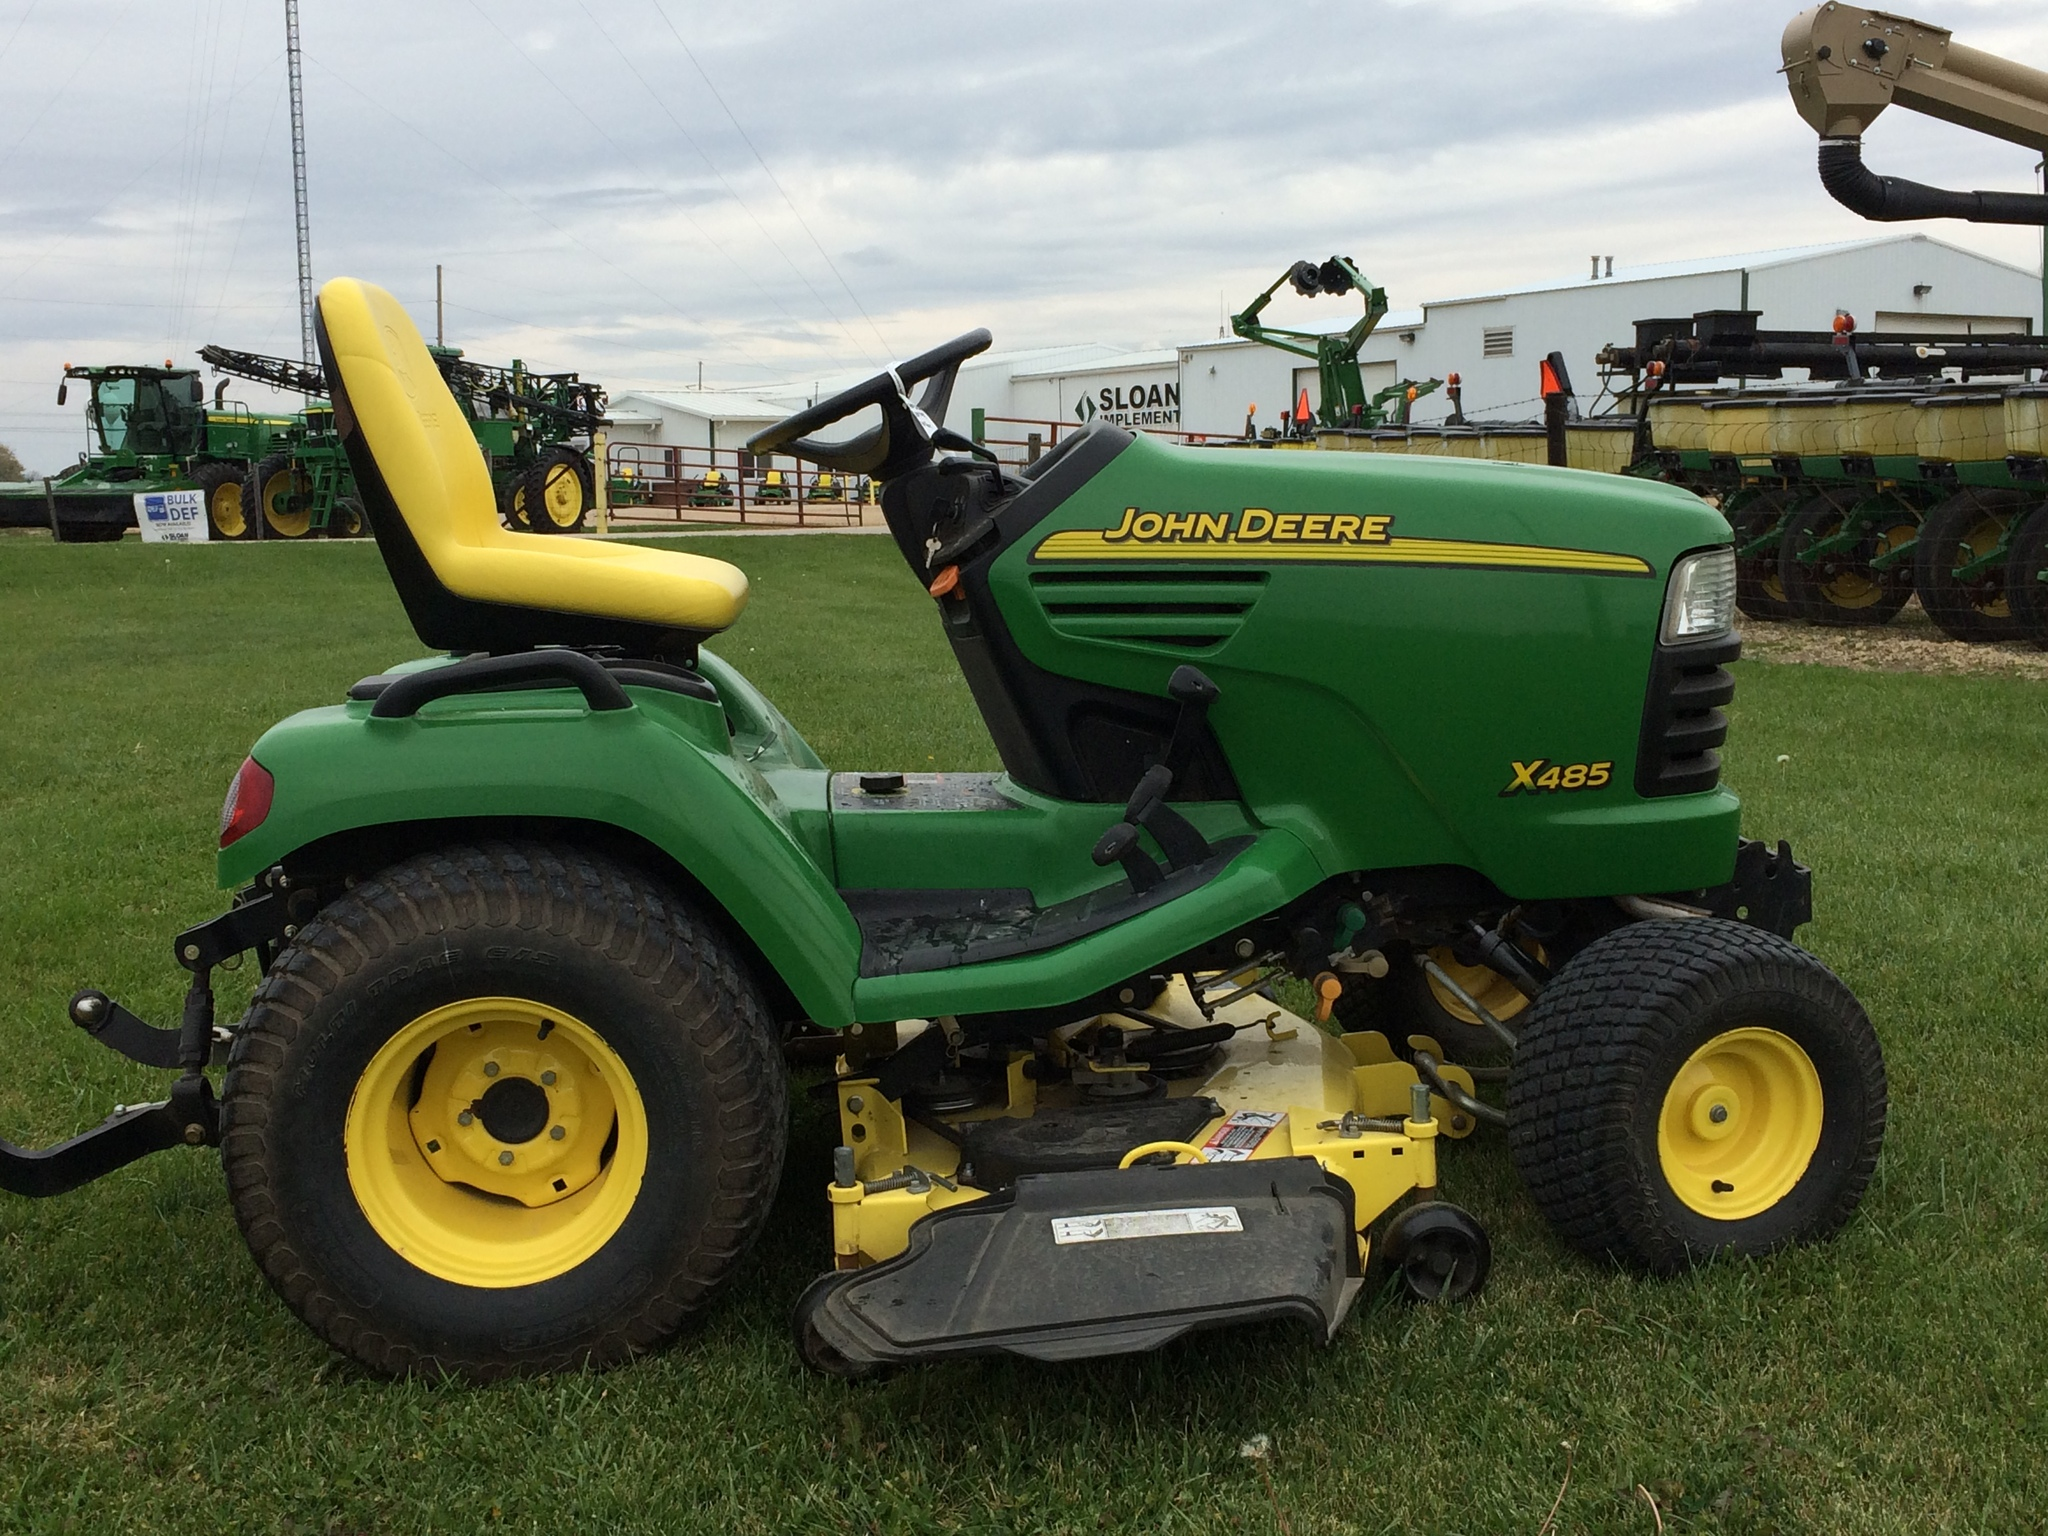 John deere x485 lawn garden tractors for sale 52326 for Garden machinery for sale